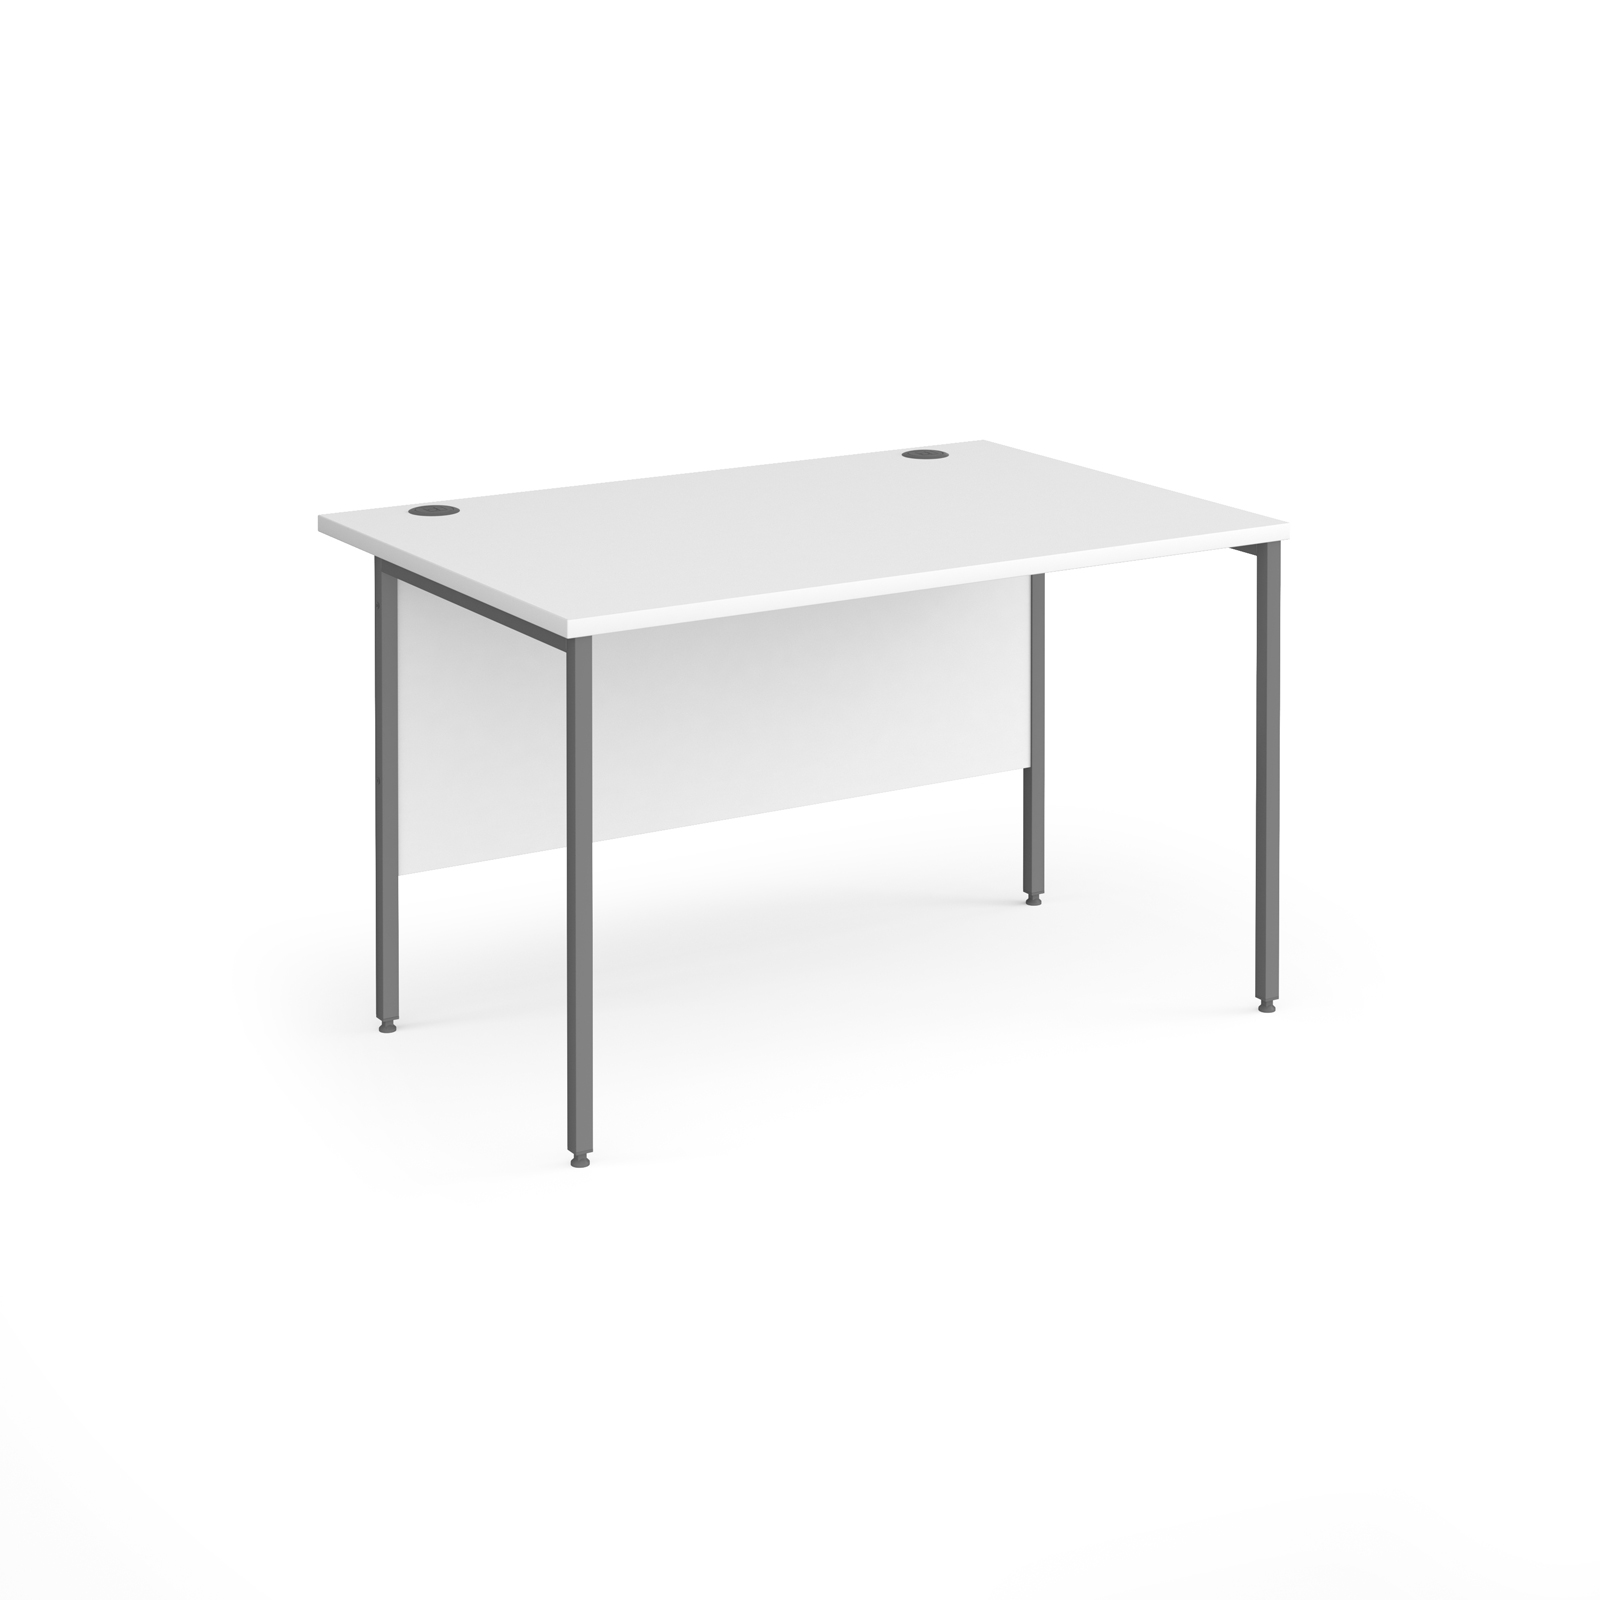 Rectangular Desks Contract 25 straight desk with graphite H-Frame leg 1200mm x 800mm - white top